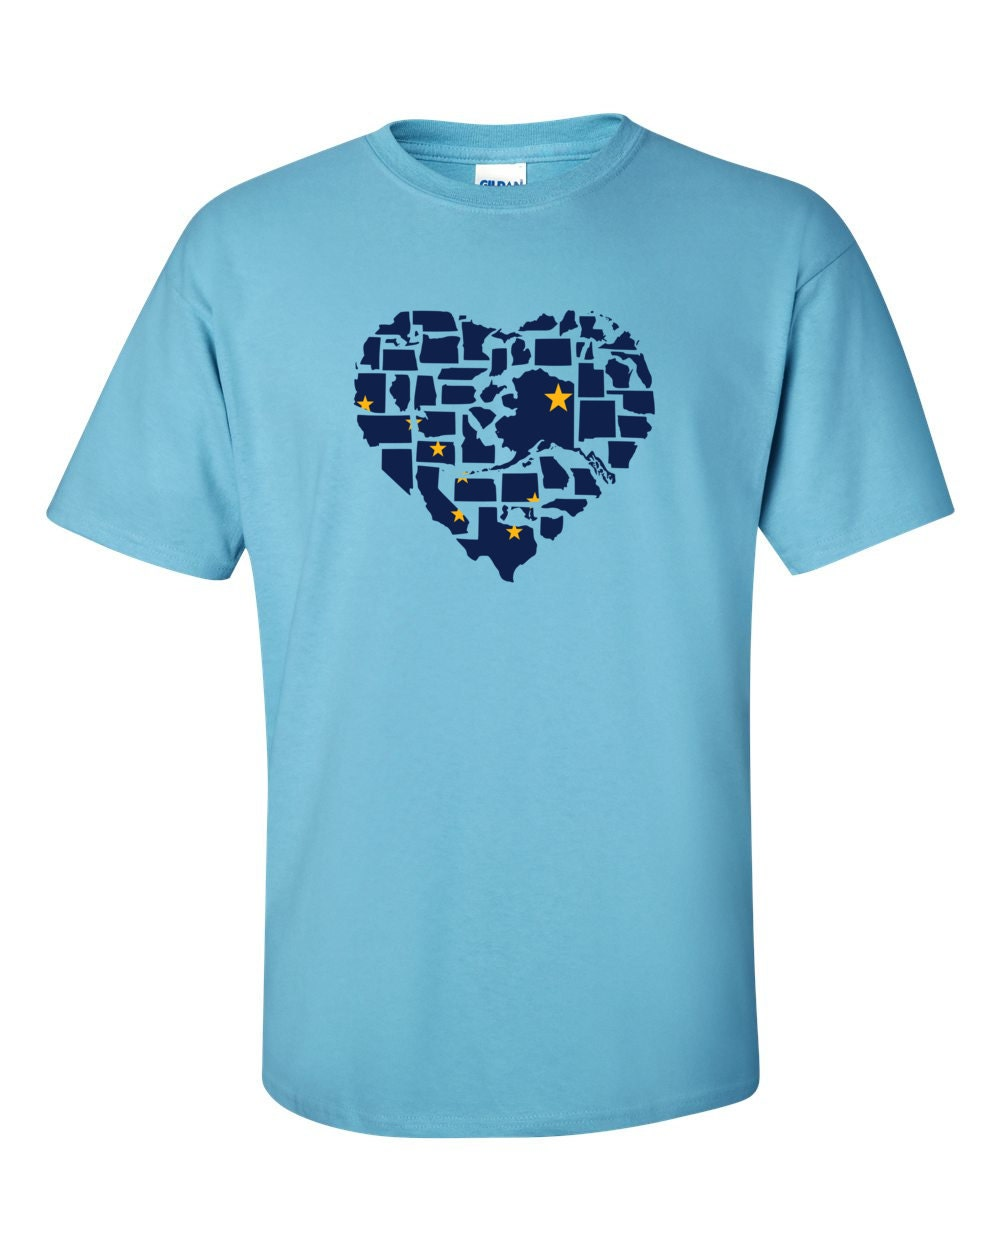 Alaska T-shirt - No Matter Where I Am, Alaska Is Alway In My Heart - My State Alaska T-shirt